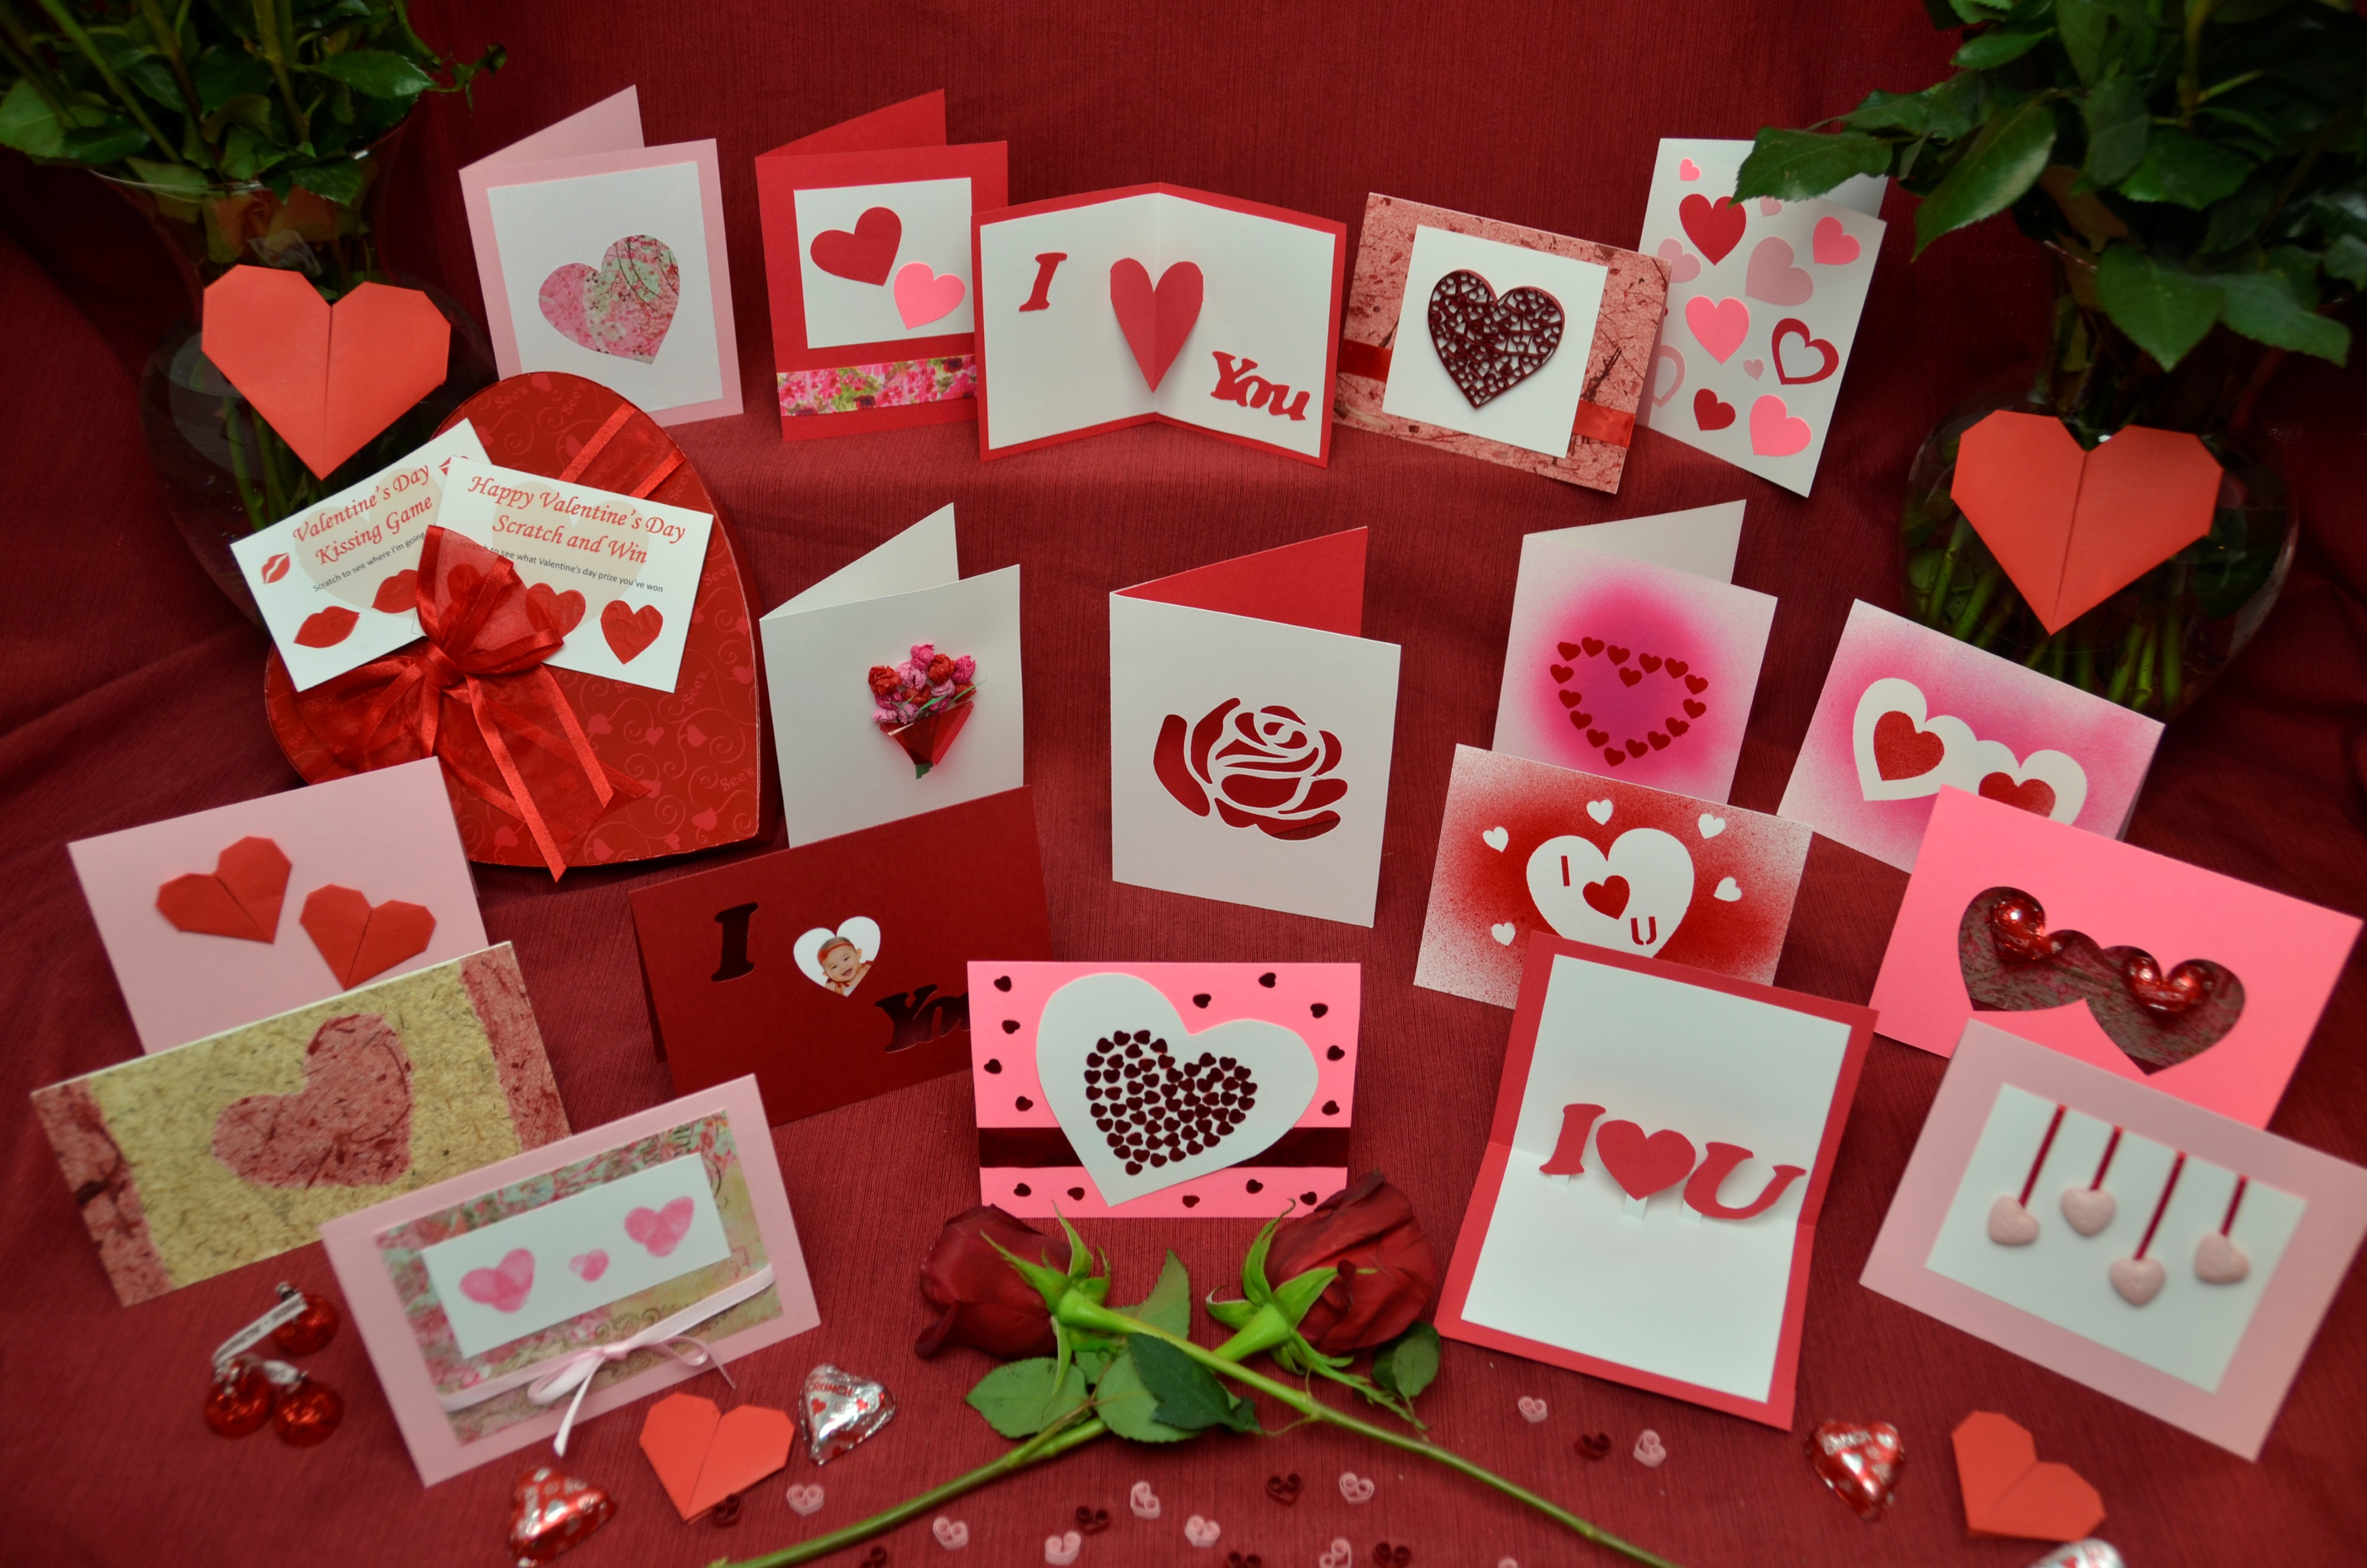 Valentines Creative Gift Ideas  Cute Romantic Valentines Day Ideas for Her 2017